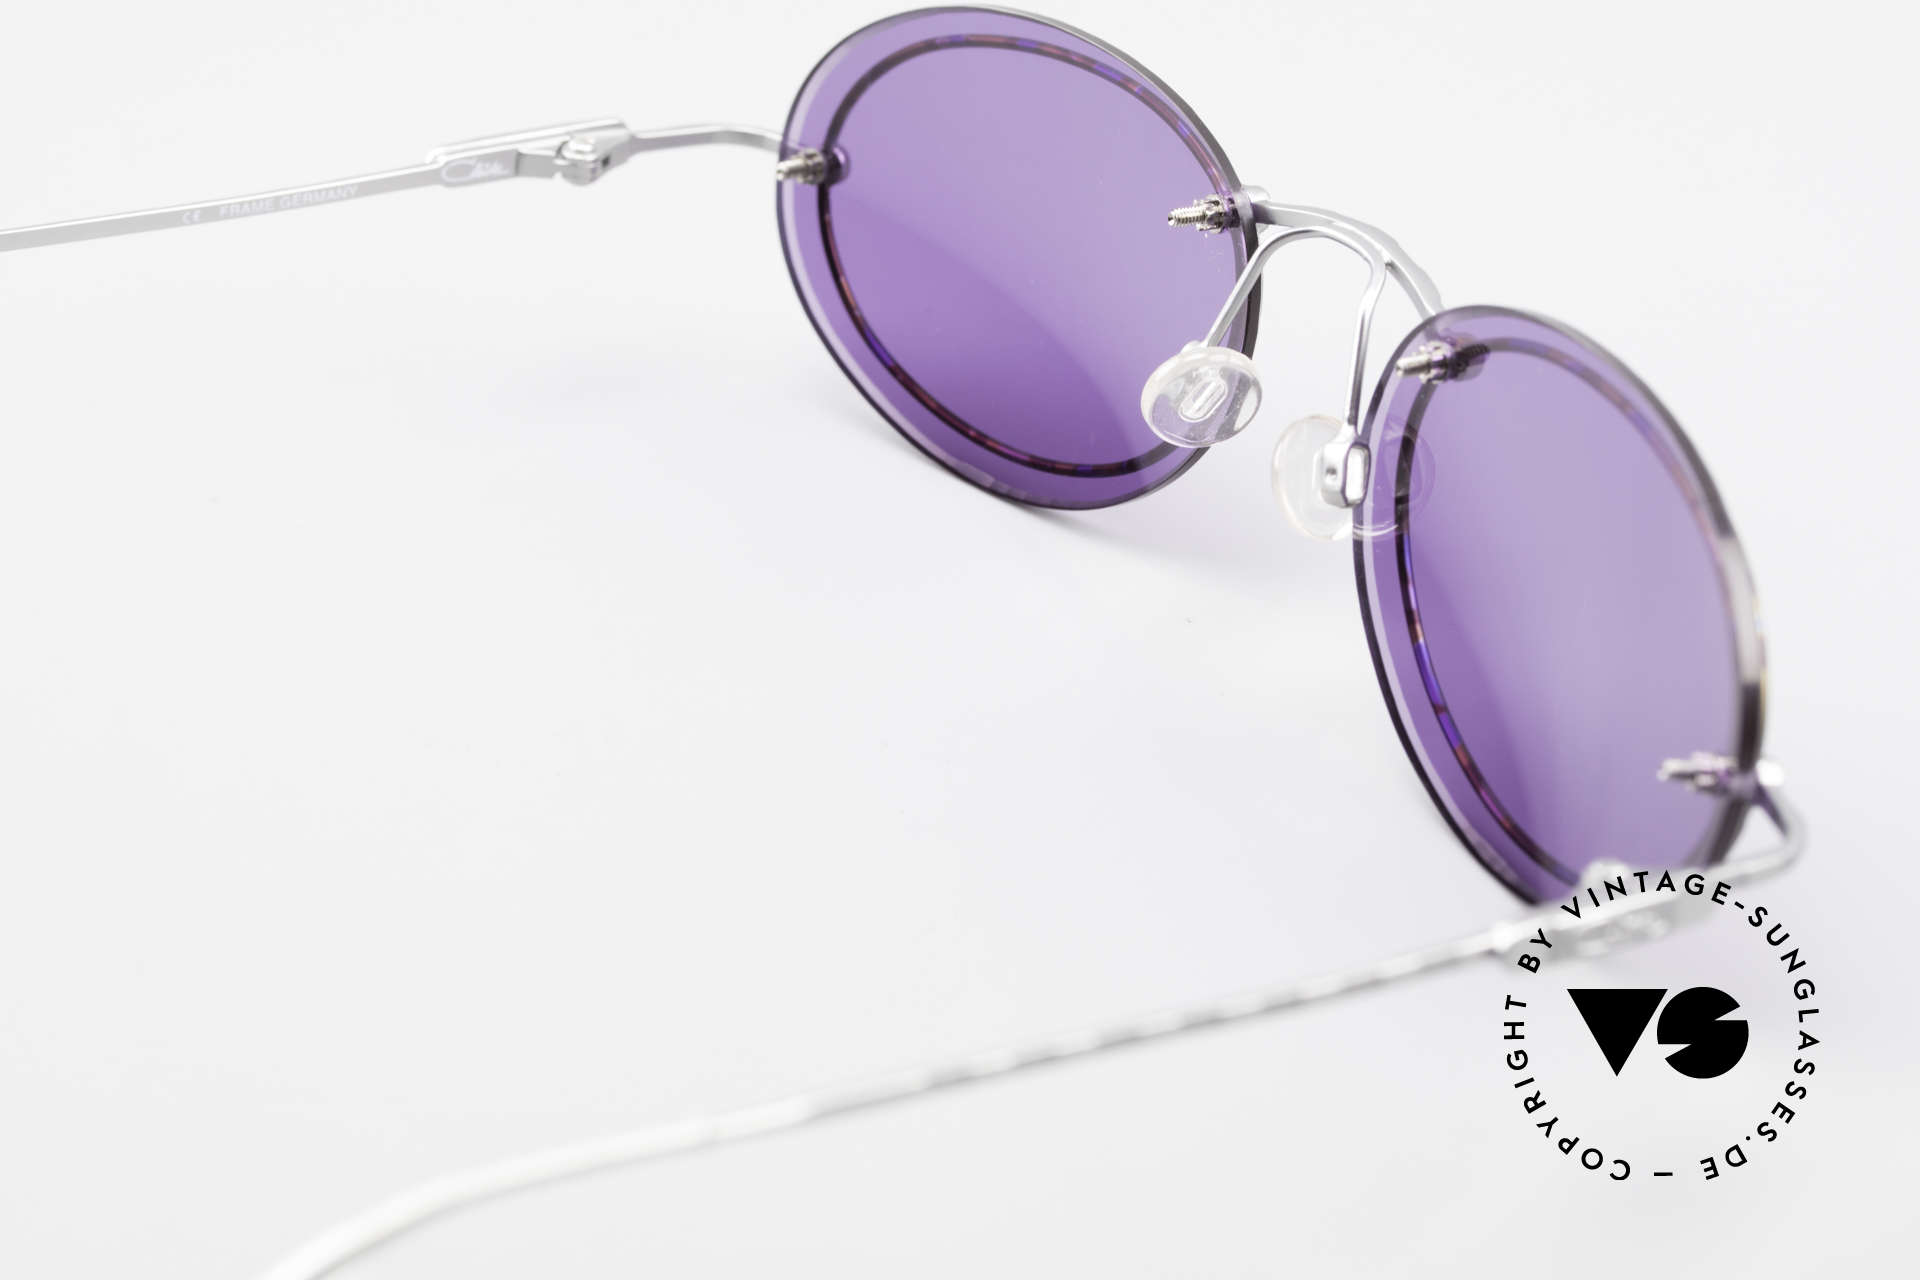 Cazal 770 Oval Vintage Sunglasses 90's, the new purple sun lenses are very pleasant to wear, Made for Men and Women